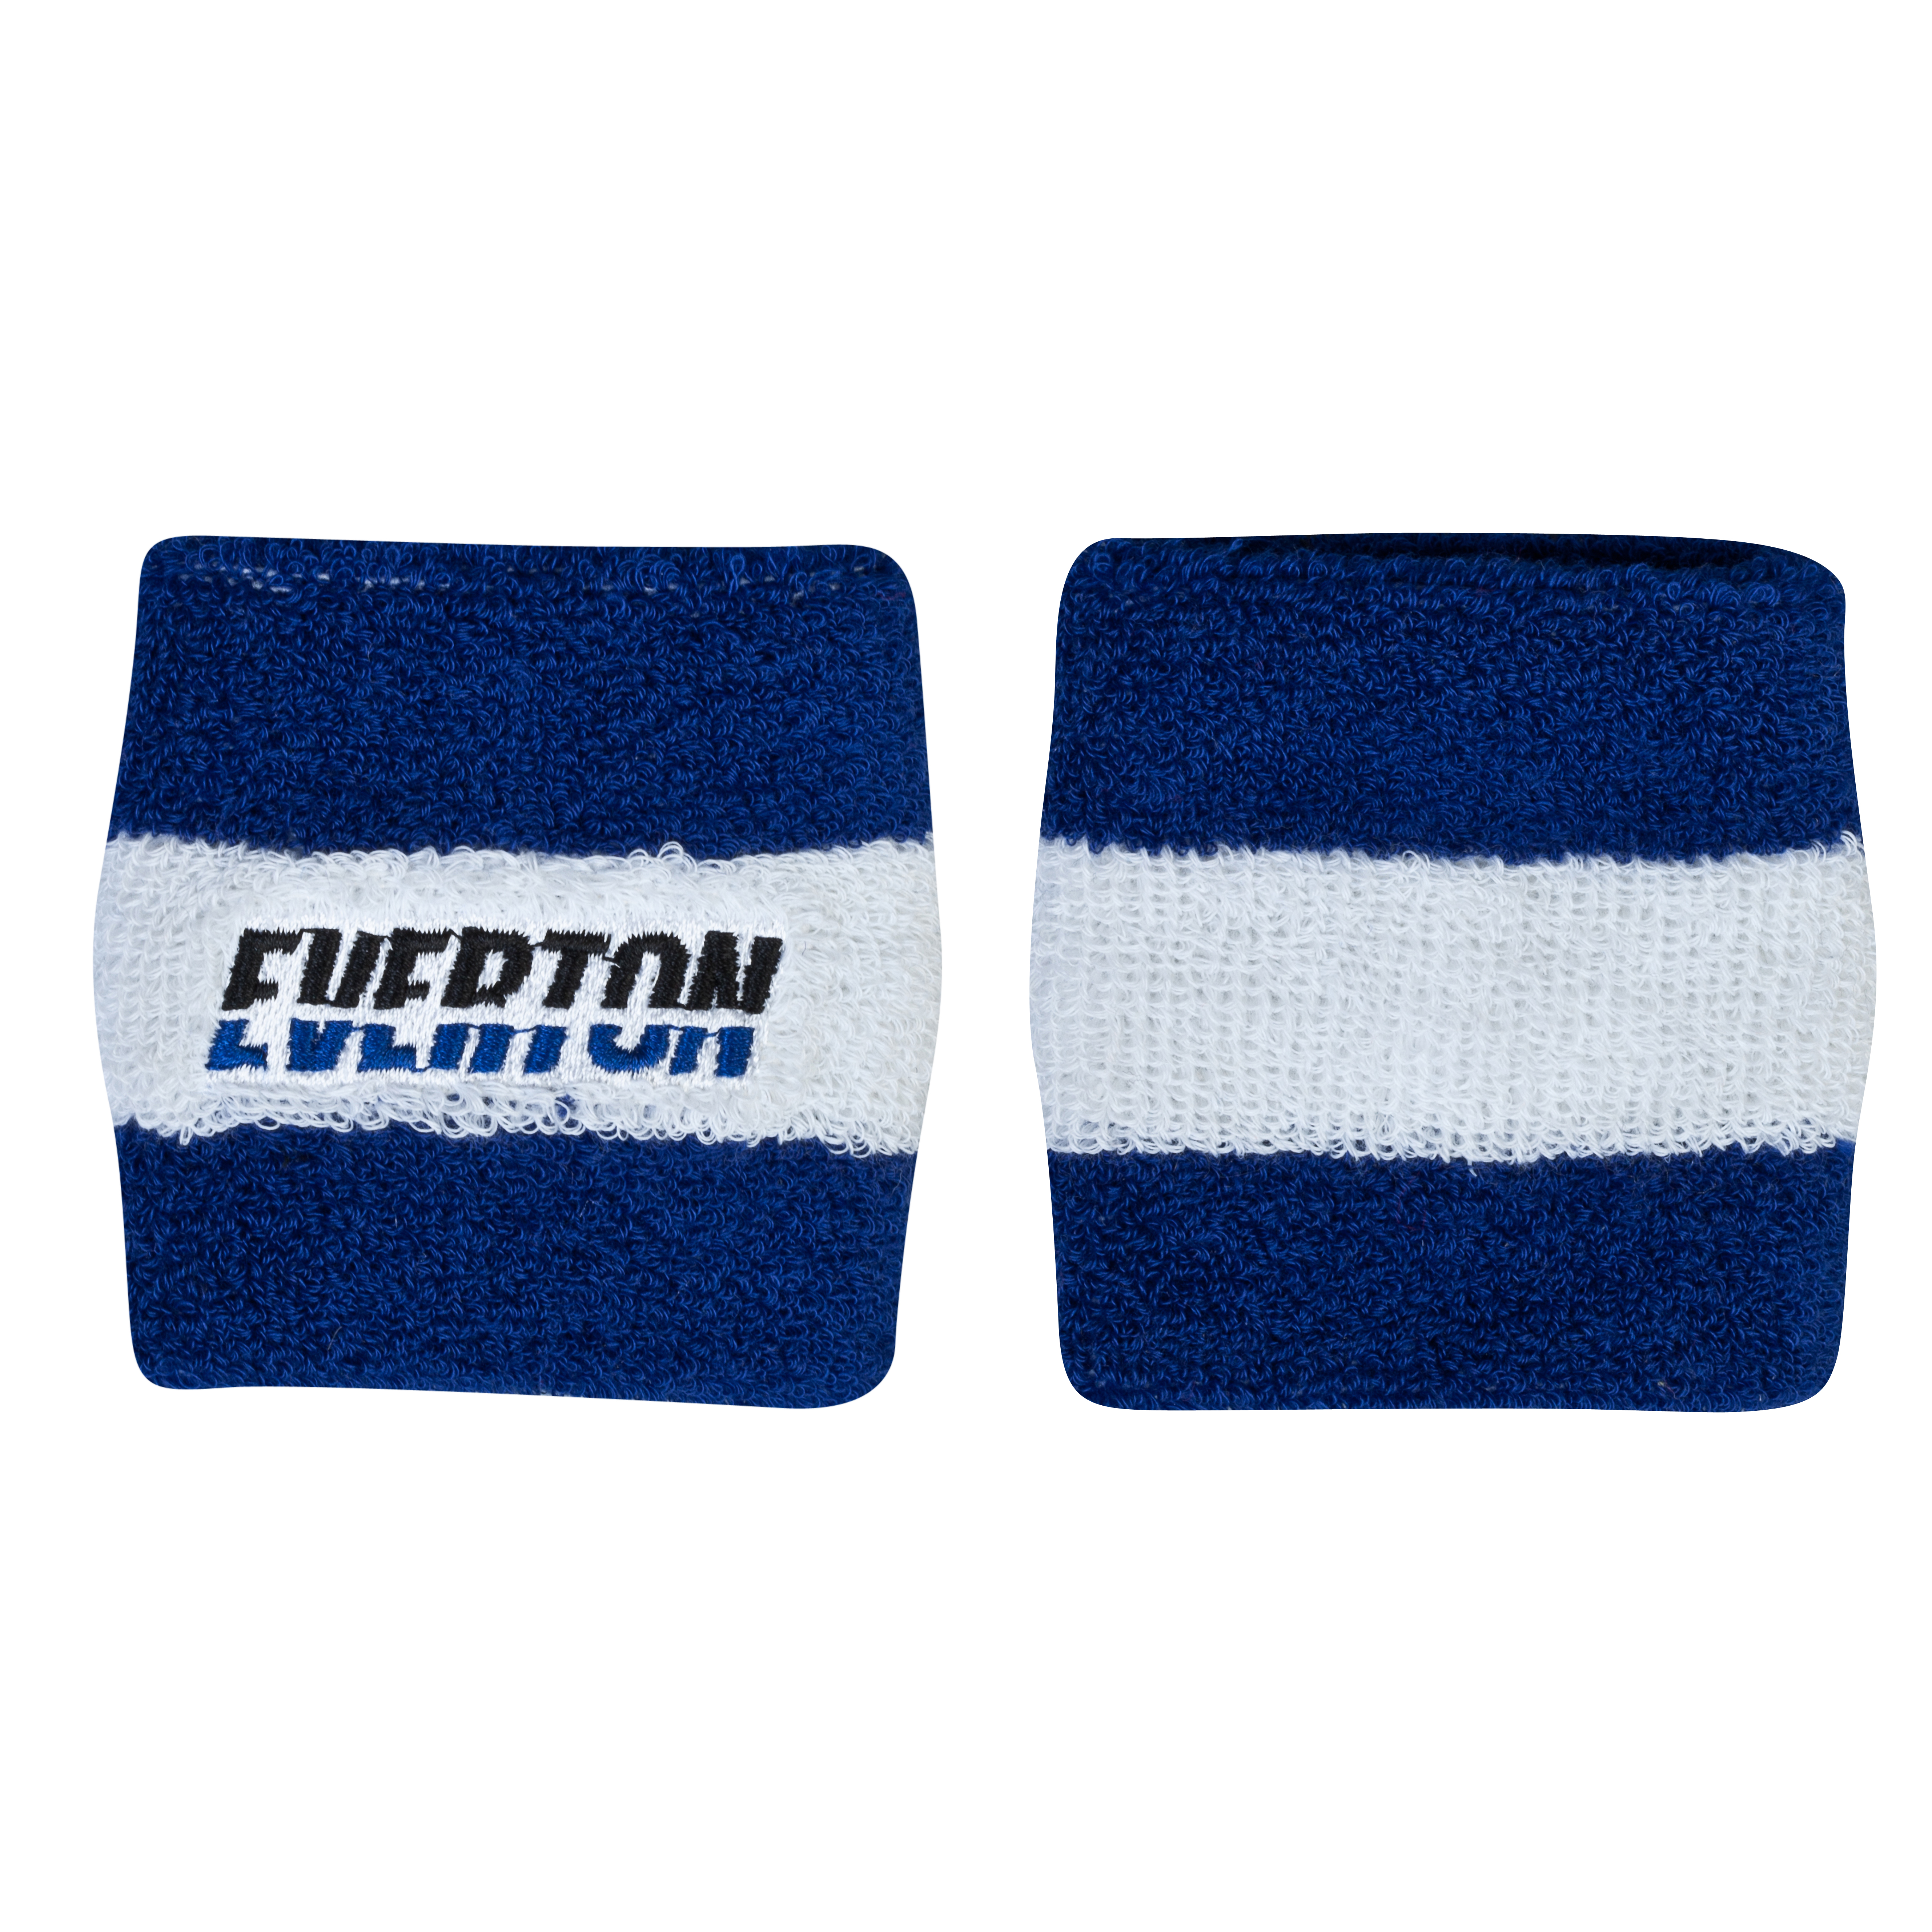 Everton Sweatbands 2 pack